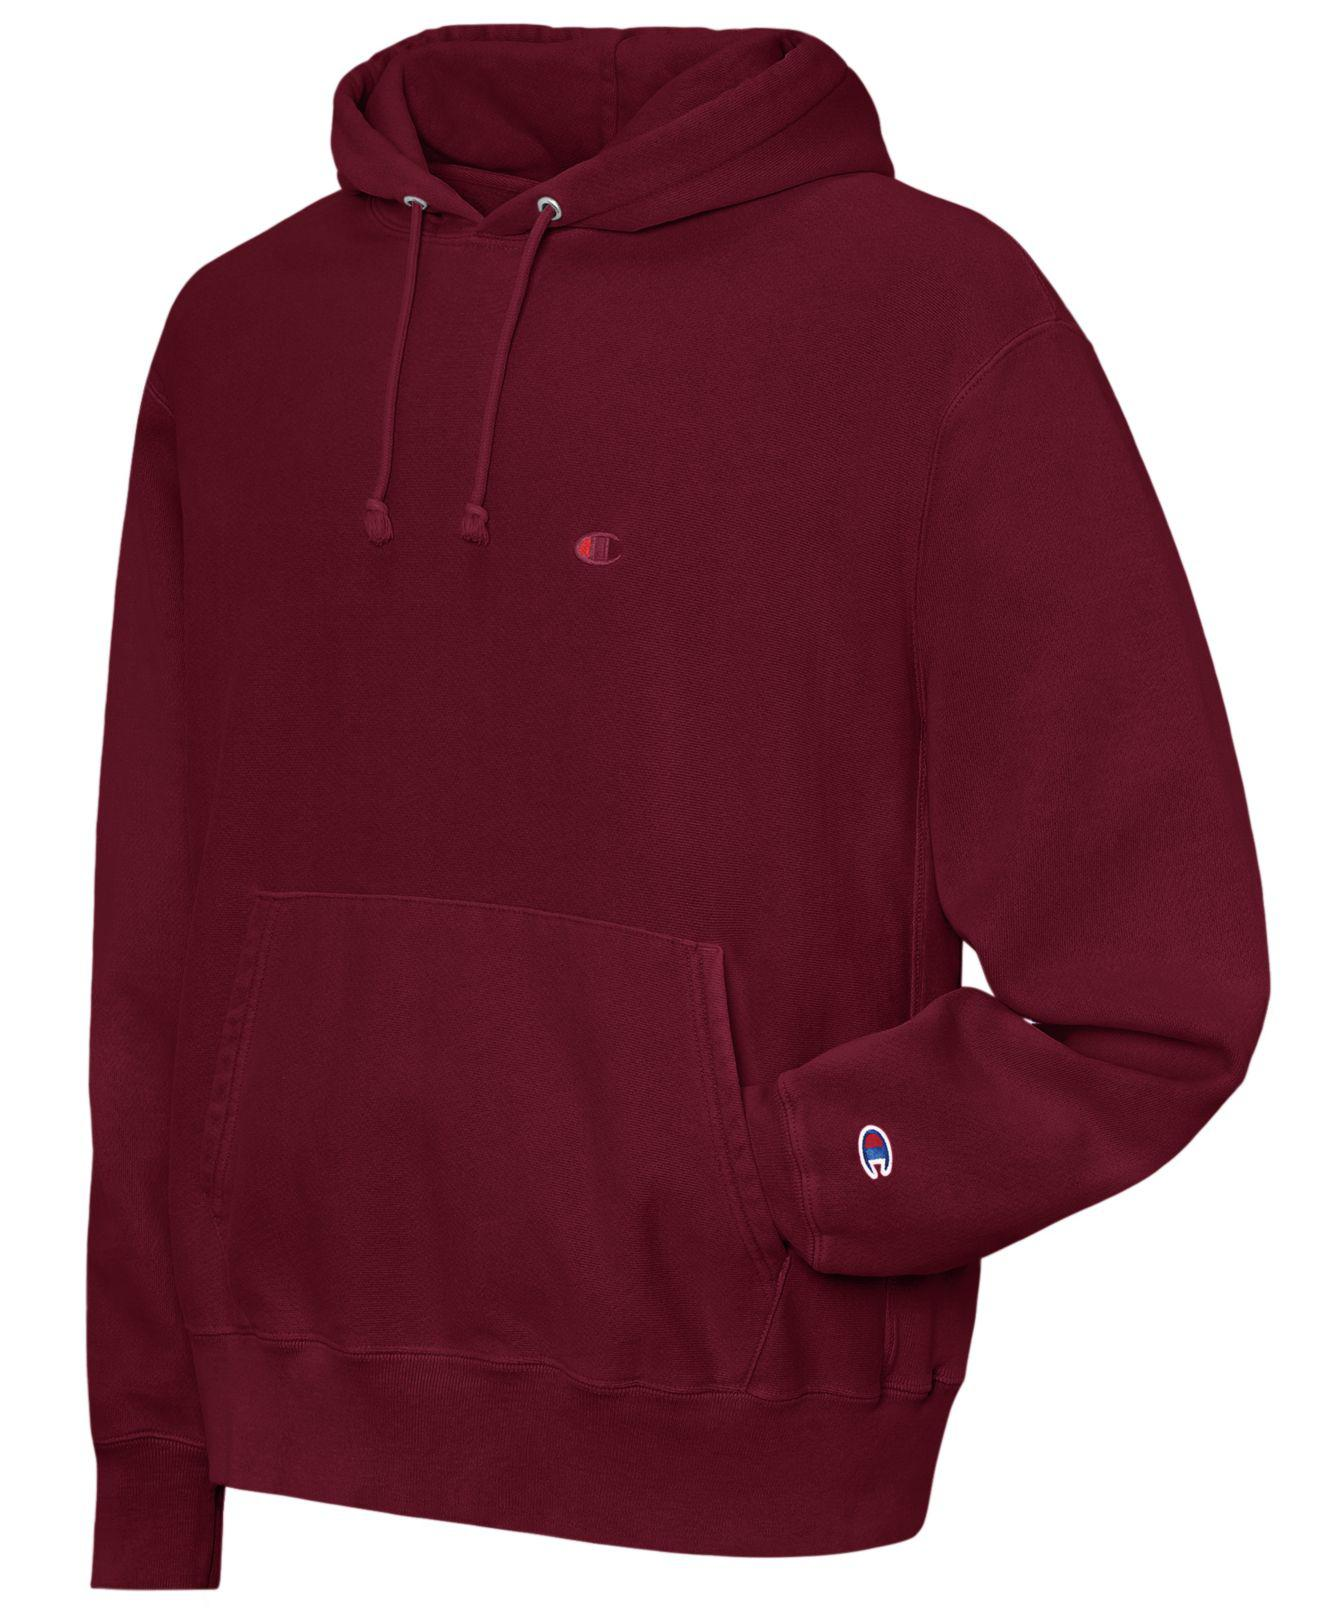 05a59d63ab73e9 Lyst - Champion Garment-dyed Reverse Weave® Hoodie in Red for Men